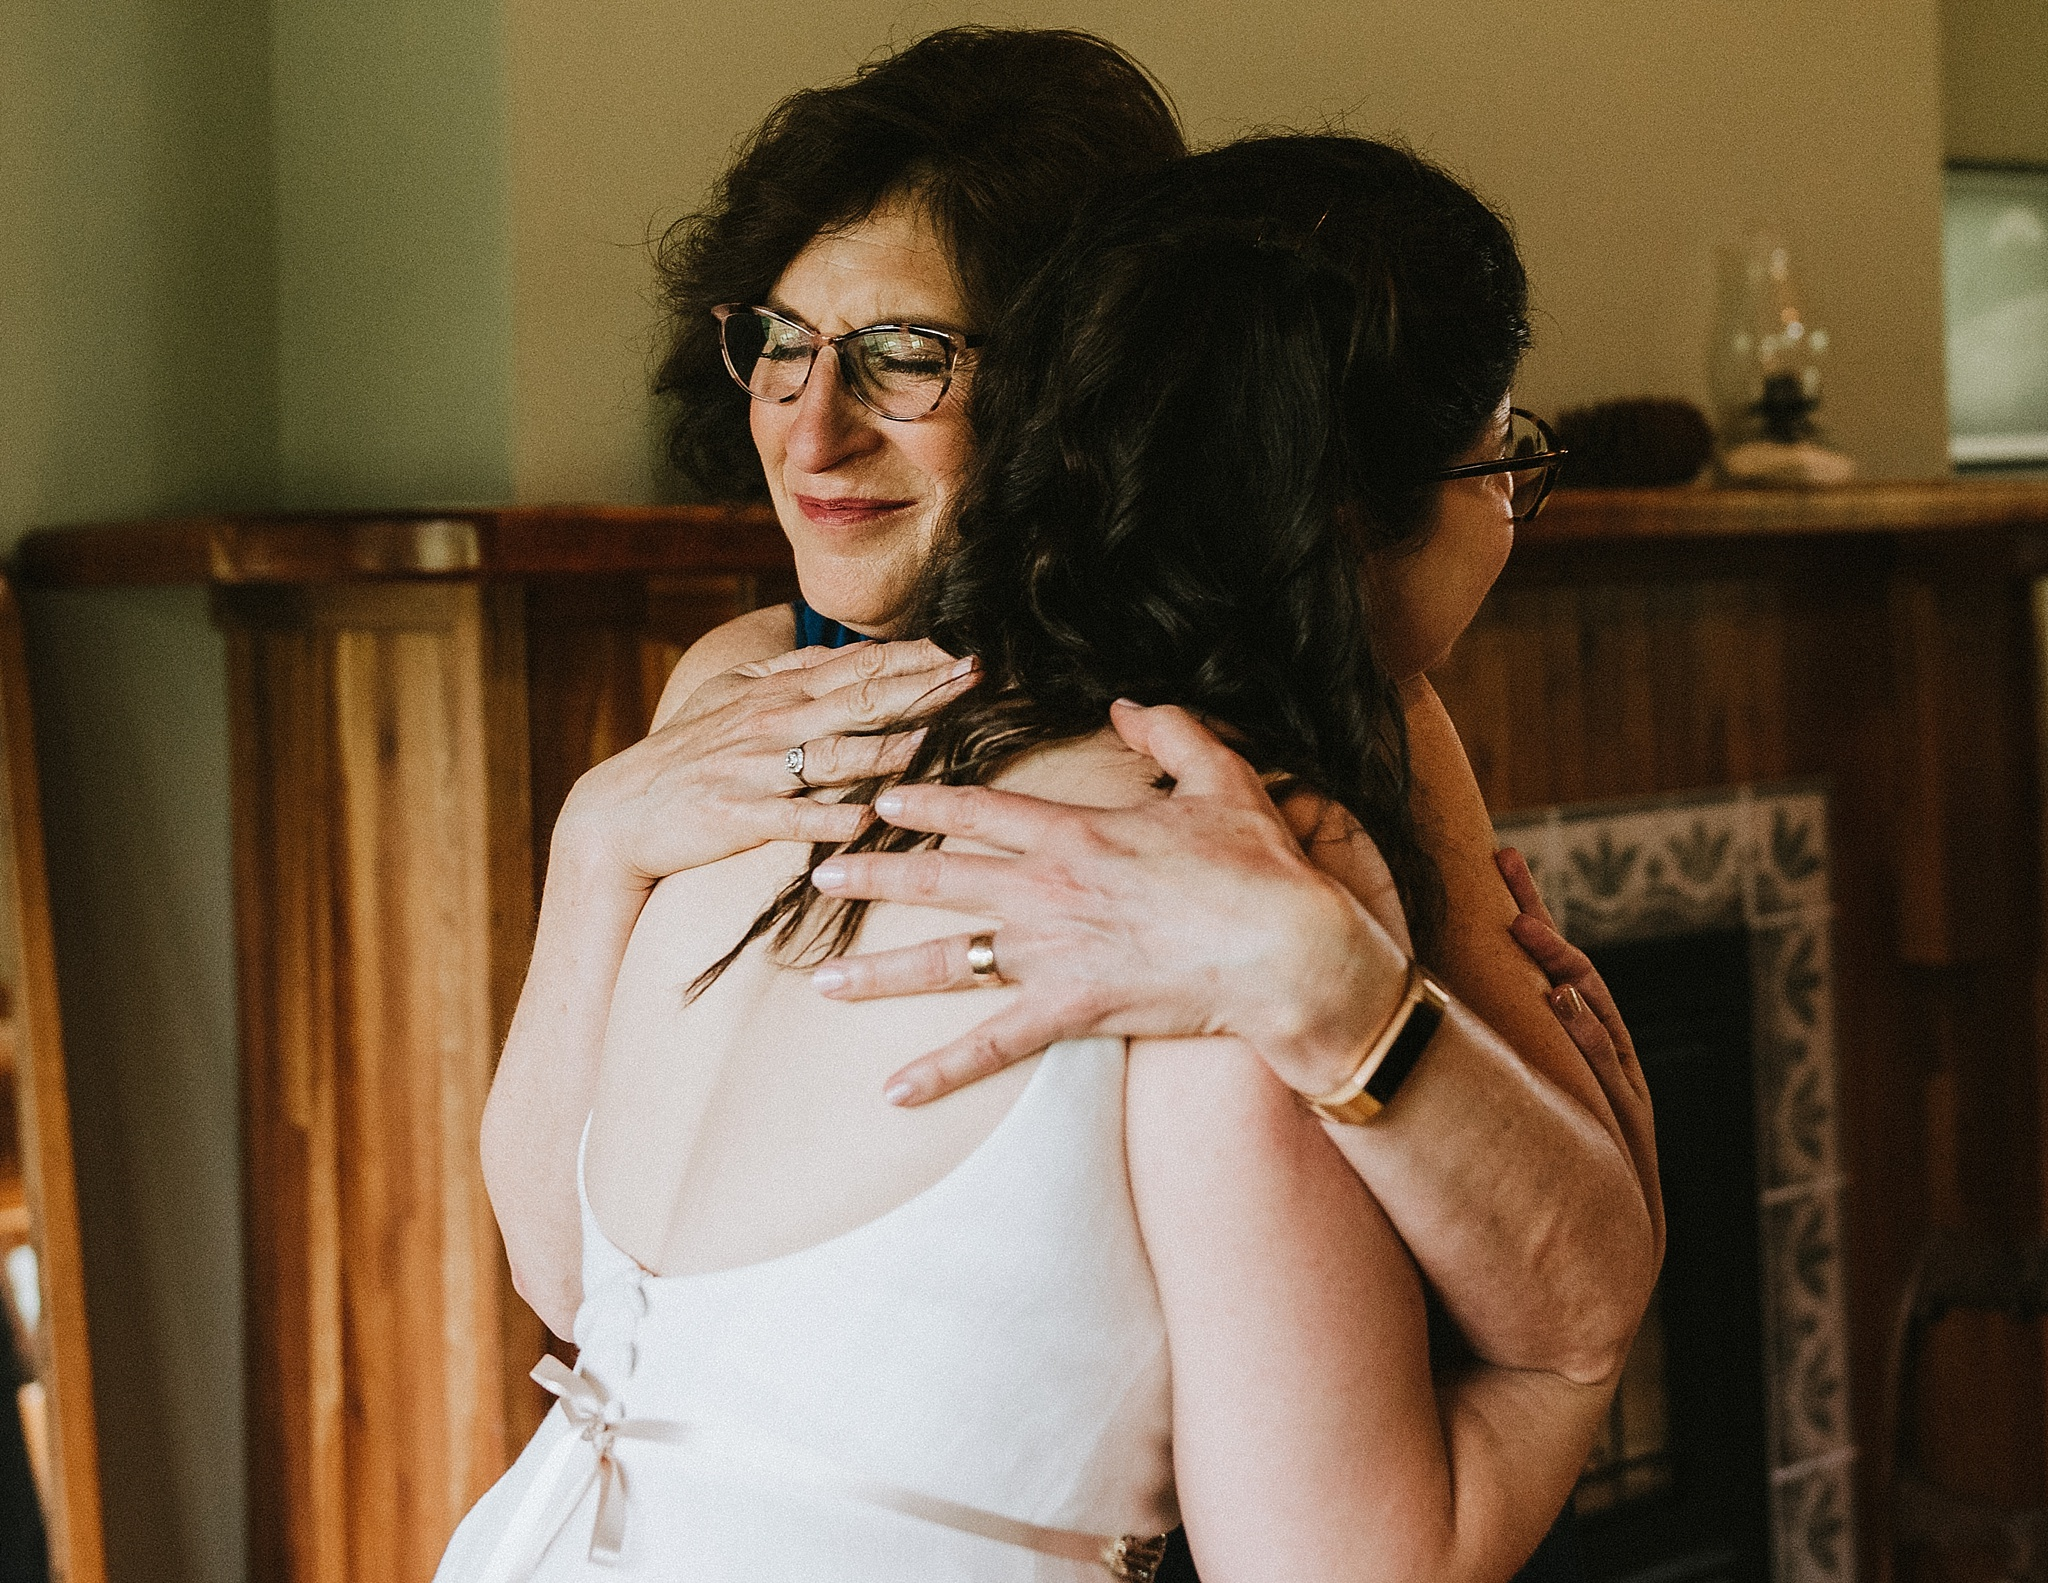 catskills_boho_wedding_2611.jpg